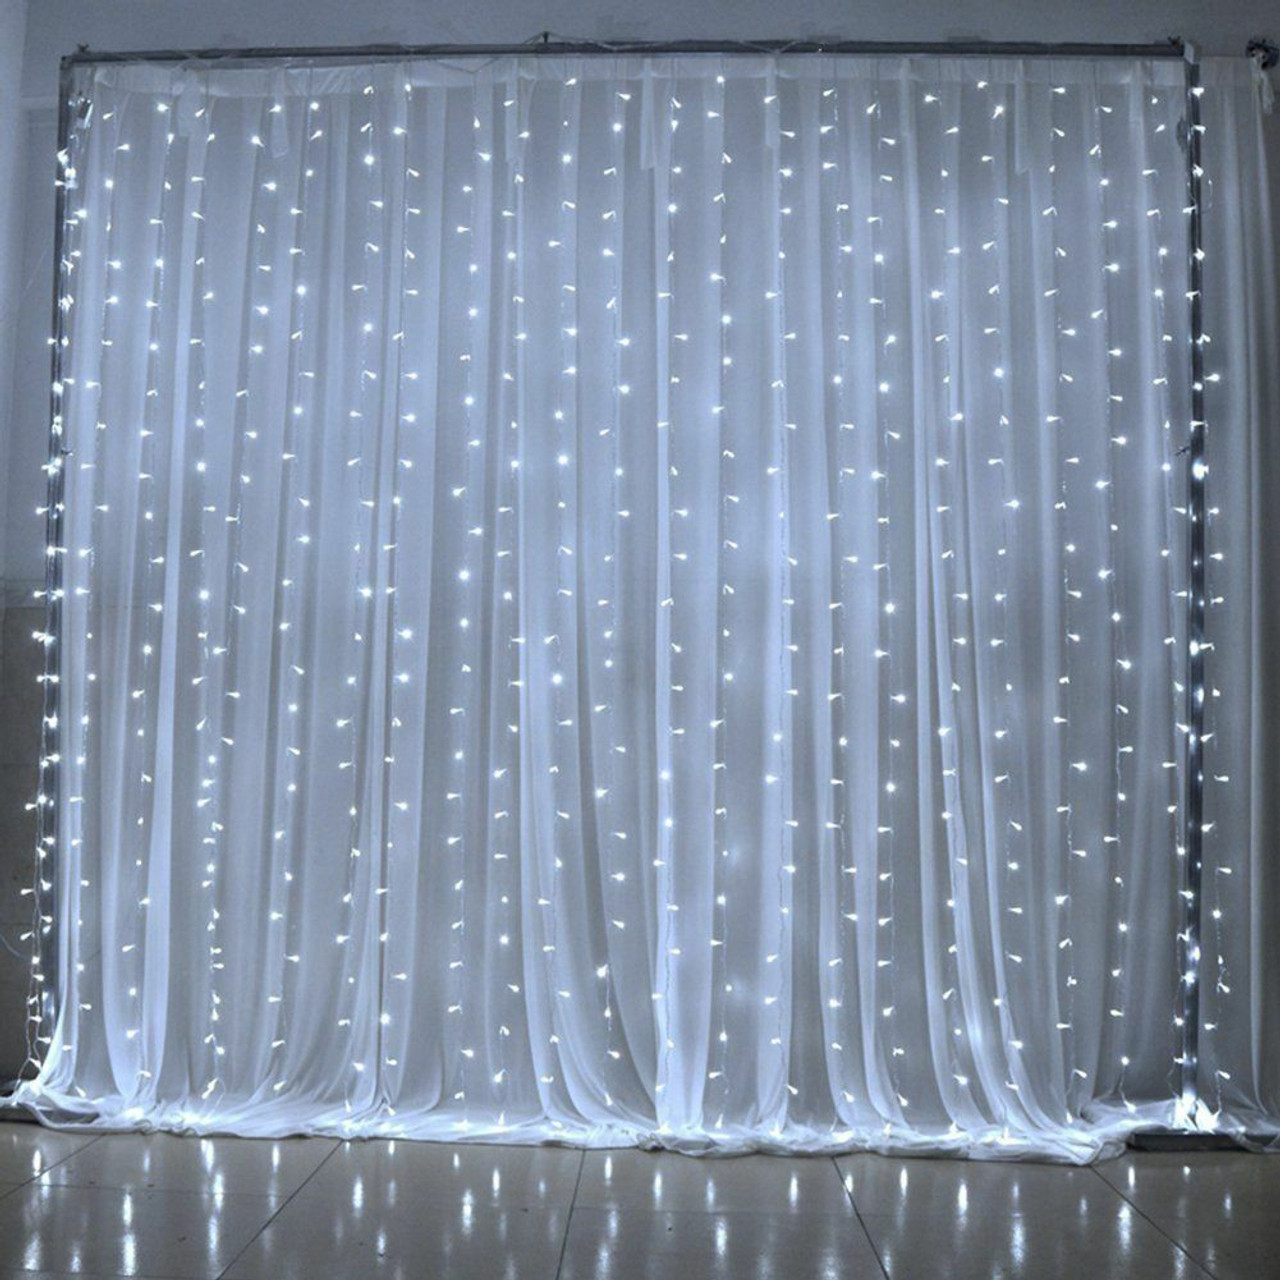 led light curtain 300 pure white lights 10 strands ul listed 8 modes 6 6 w x 9 8 l fabric optional